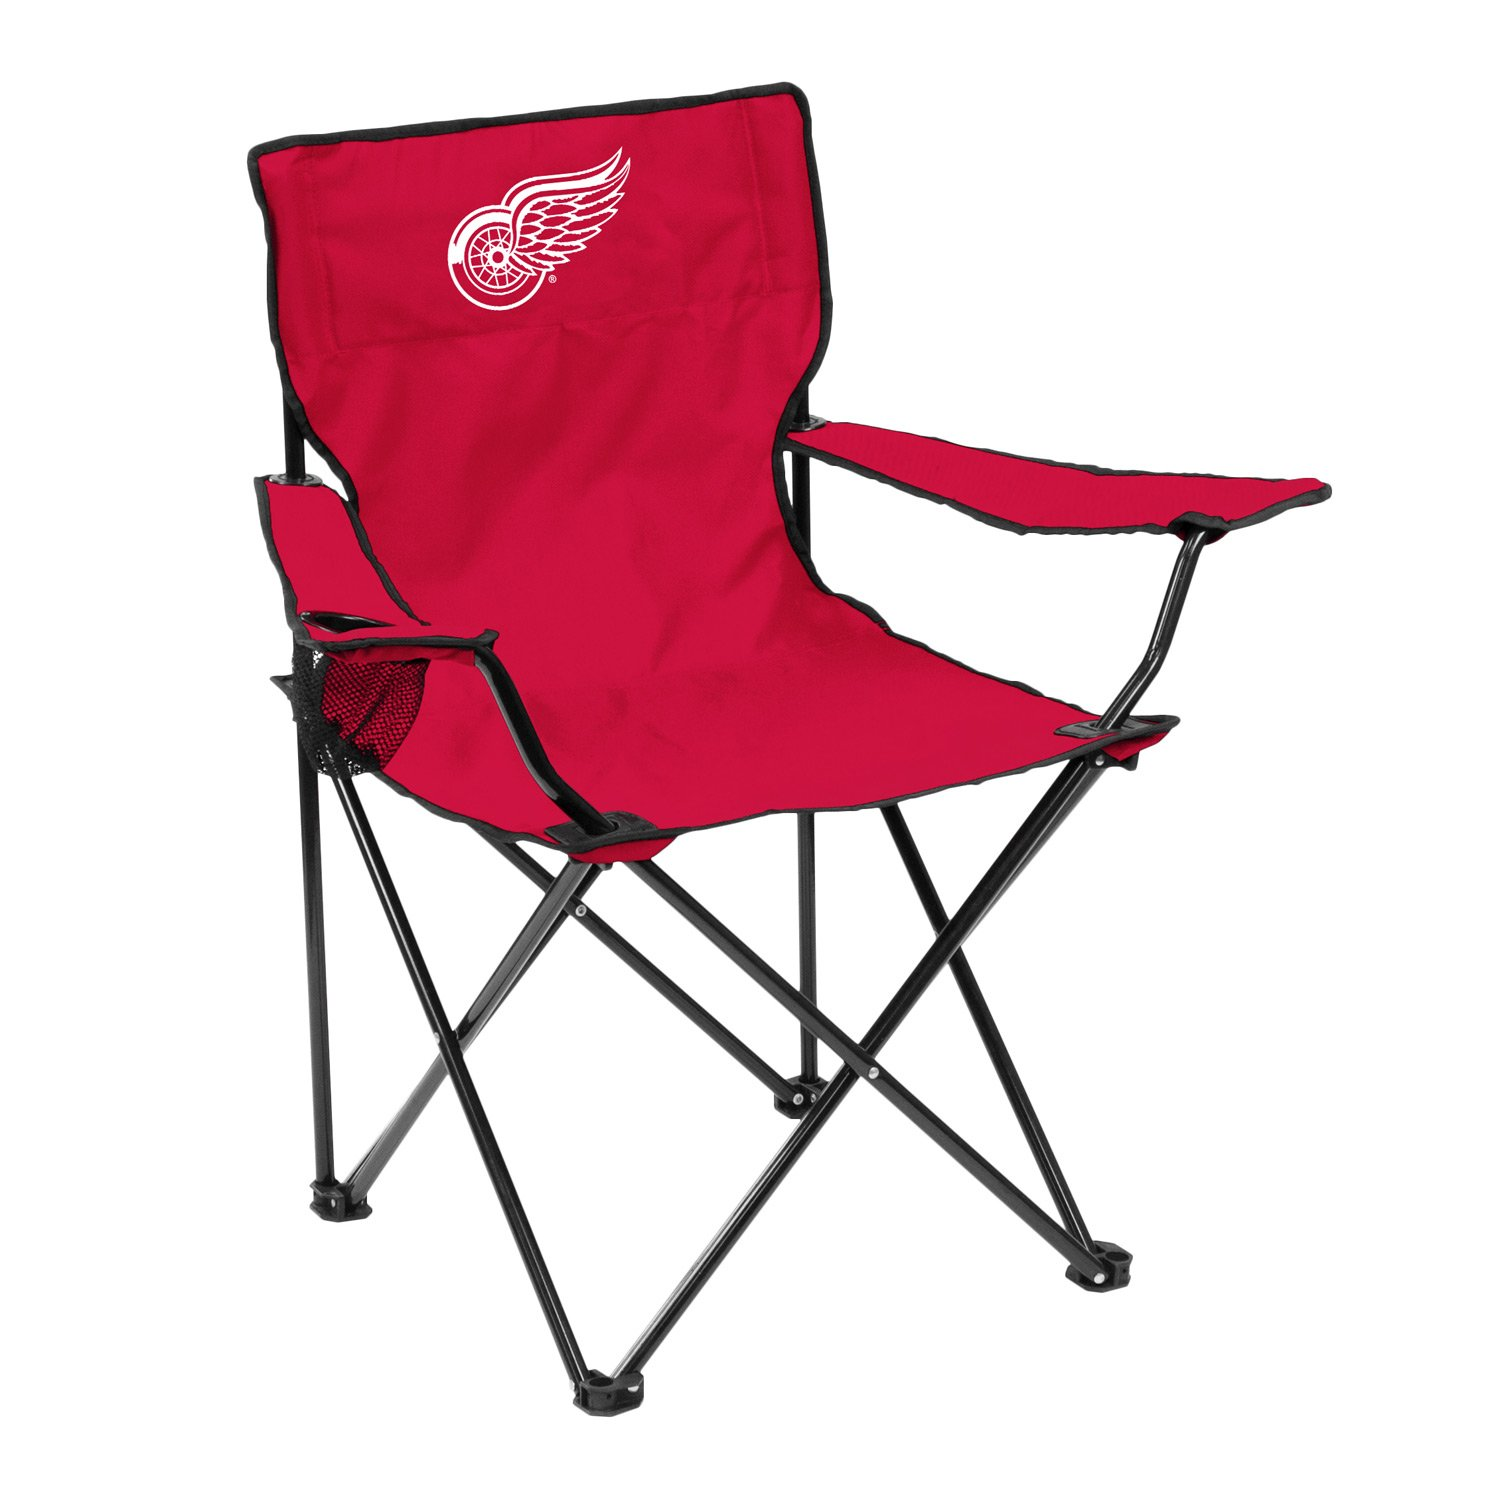 Folding C& Chair Logo Detroit Red Wings Adjustable Quad C&ing Chairs - Walmart.com  sc 1 st  Walmart & Folding Camp Chair Logo Detroit Red Wings Adjustable Quad Camping ...